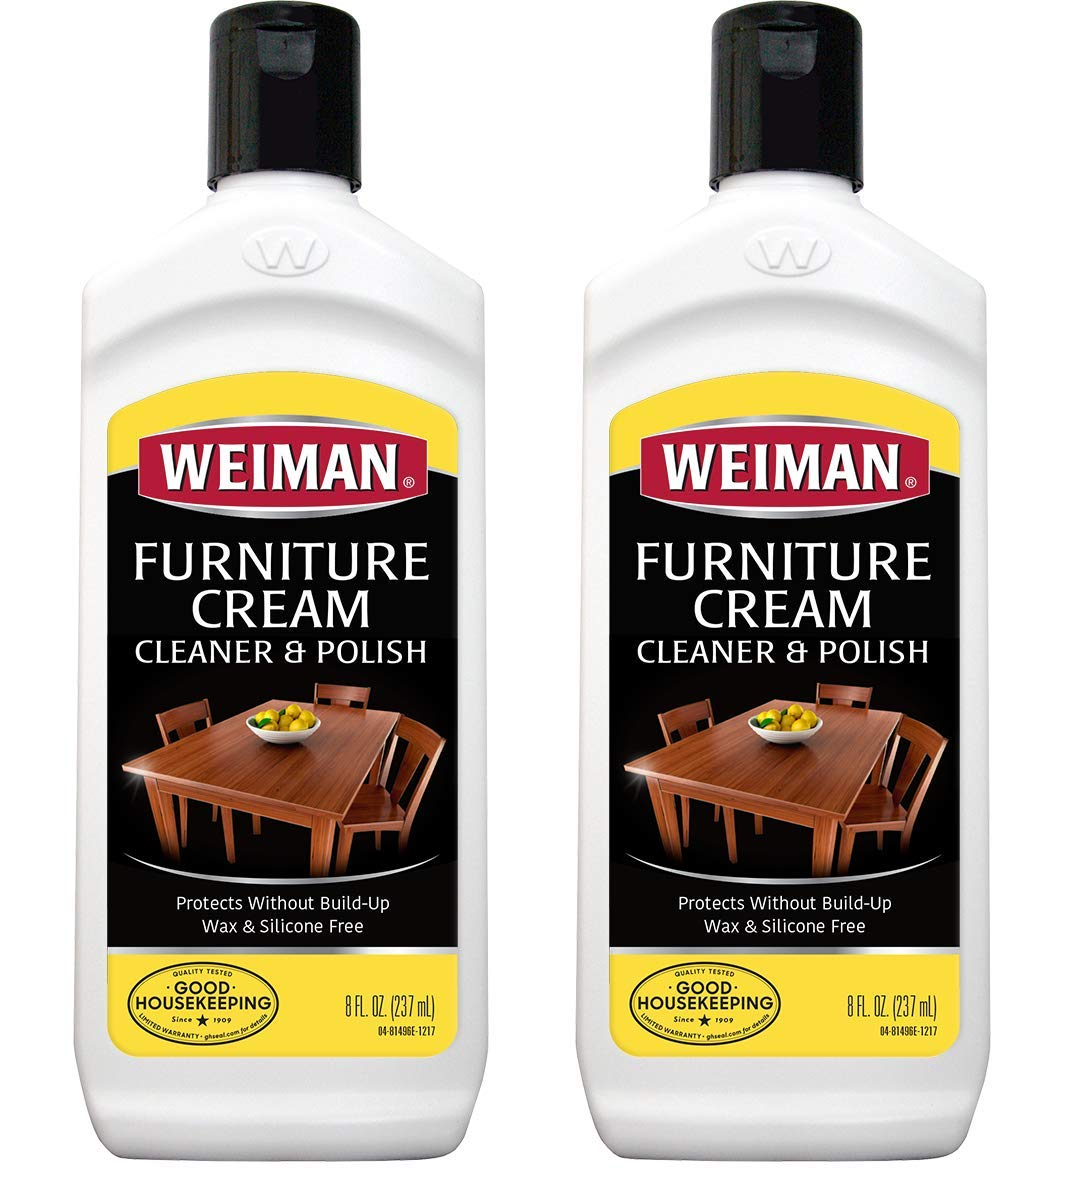 Weiman Furniture Polish 8 Ounce (2 Pack) Use on Furniture, Wood Table Cleaner, Cabinet Restorer, Conditioner, Polish by Weiman